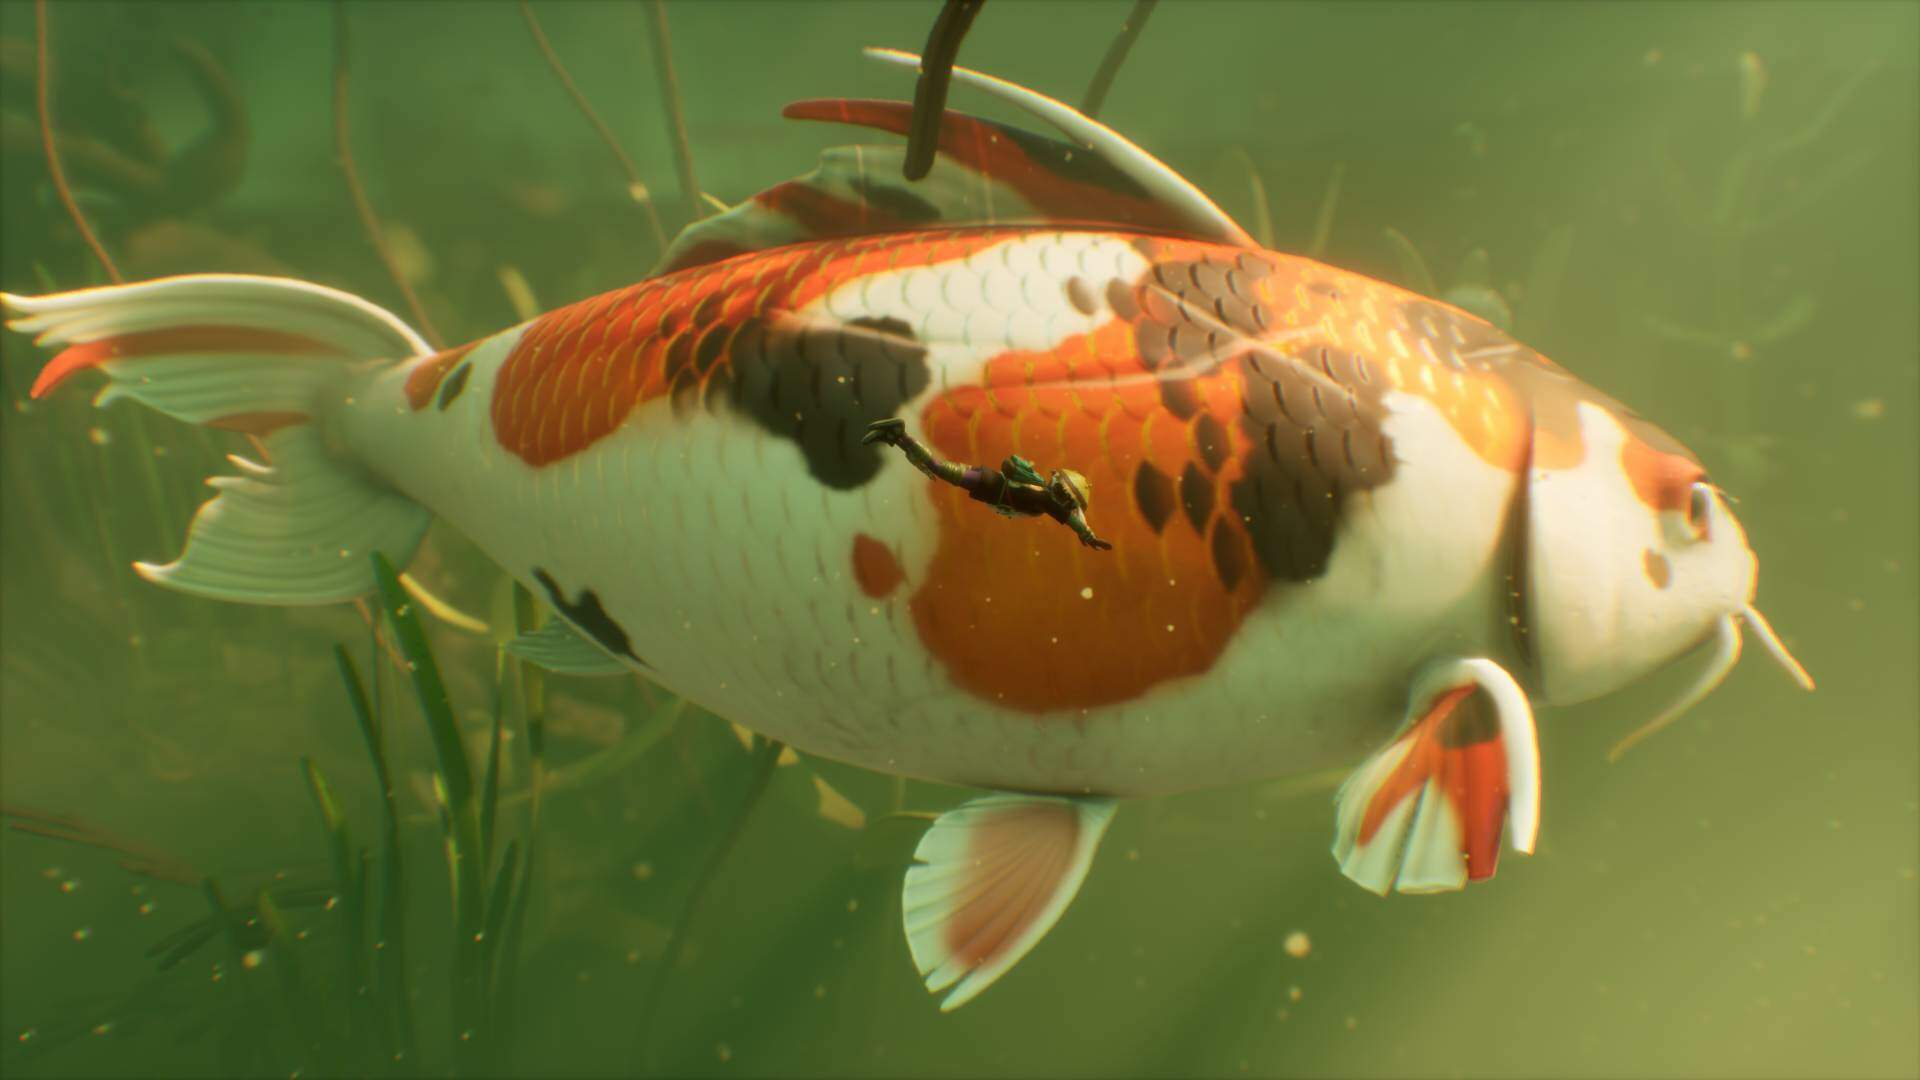 Grounded's Next Update Adds an Intimidating Koi Fish to the Pond